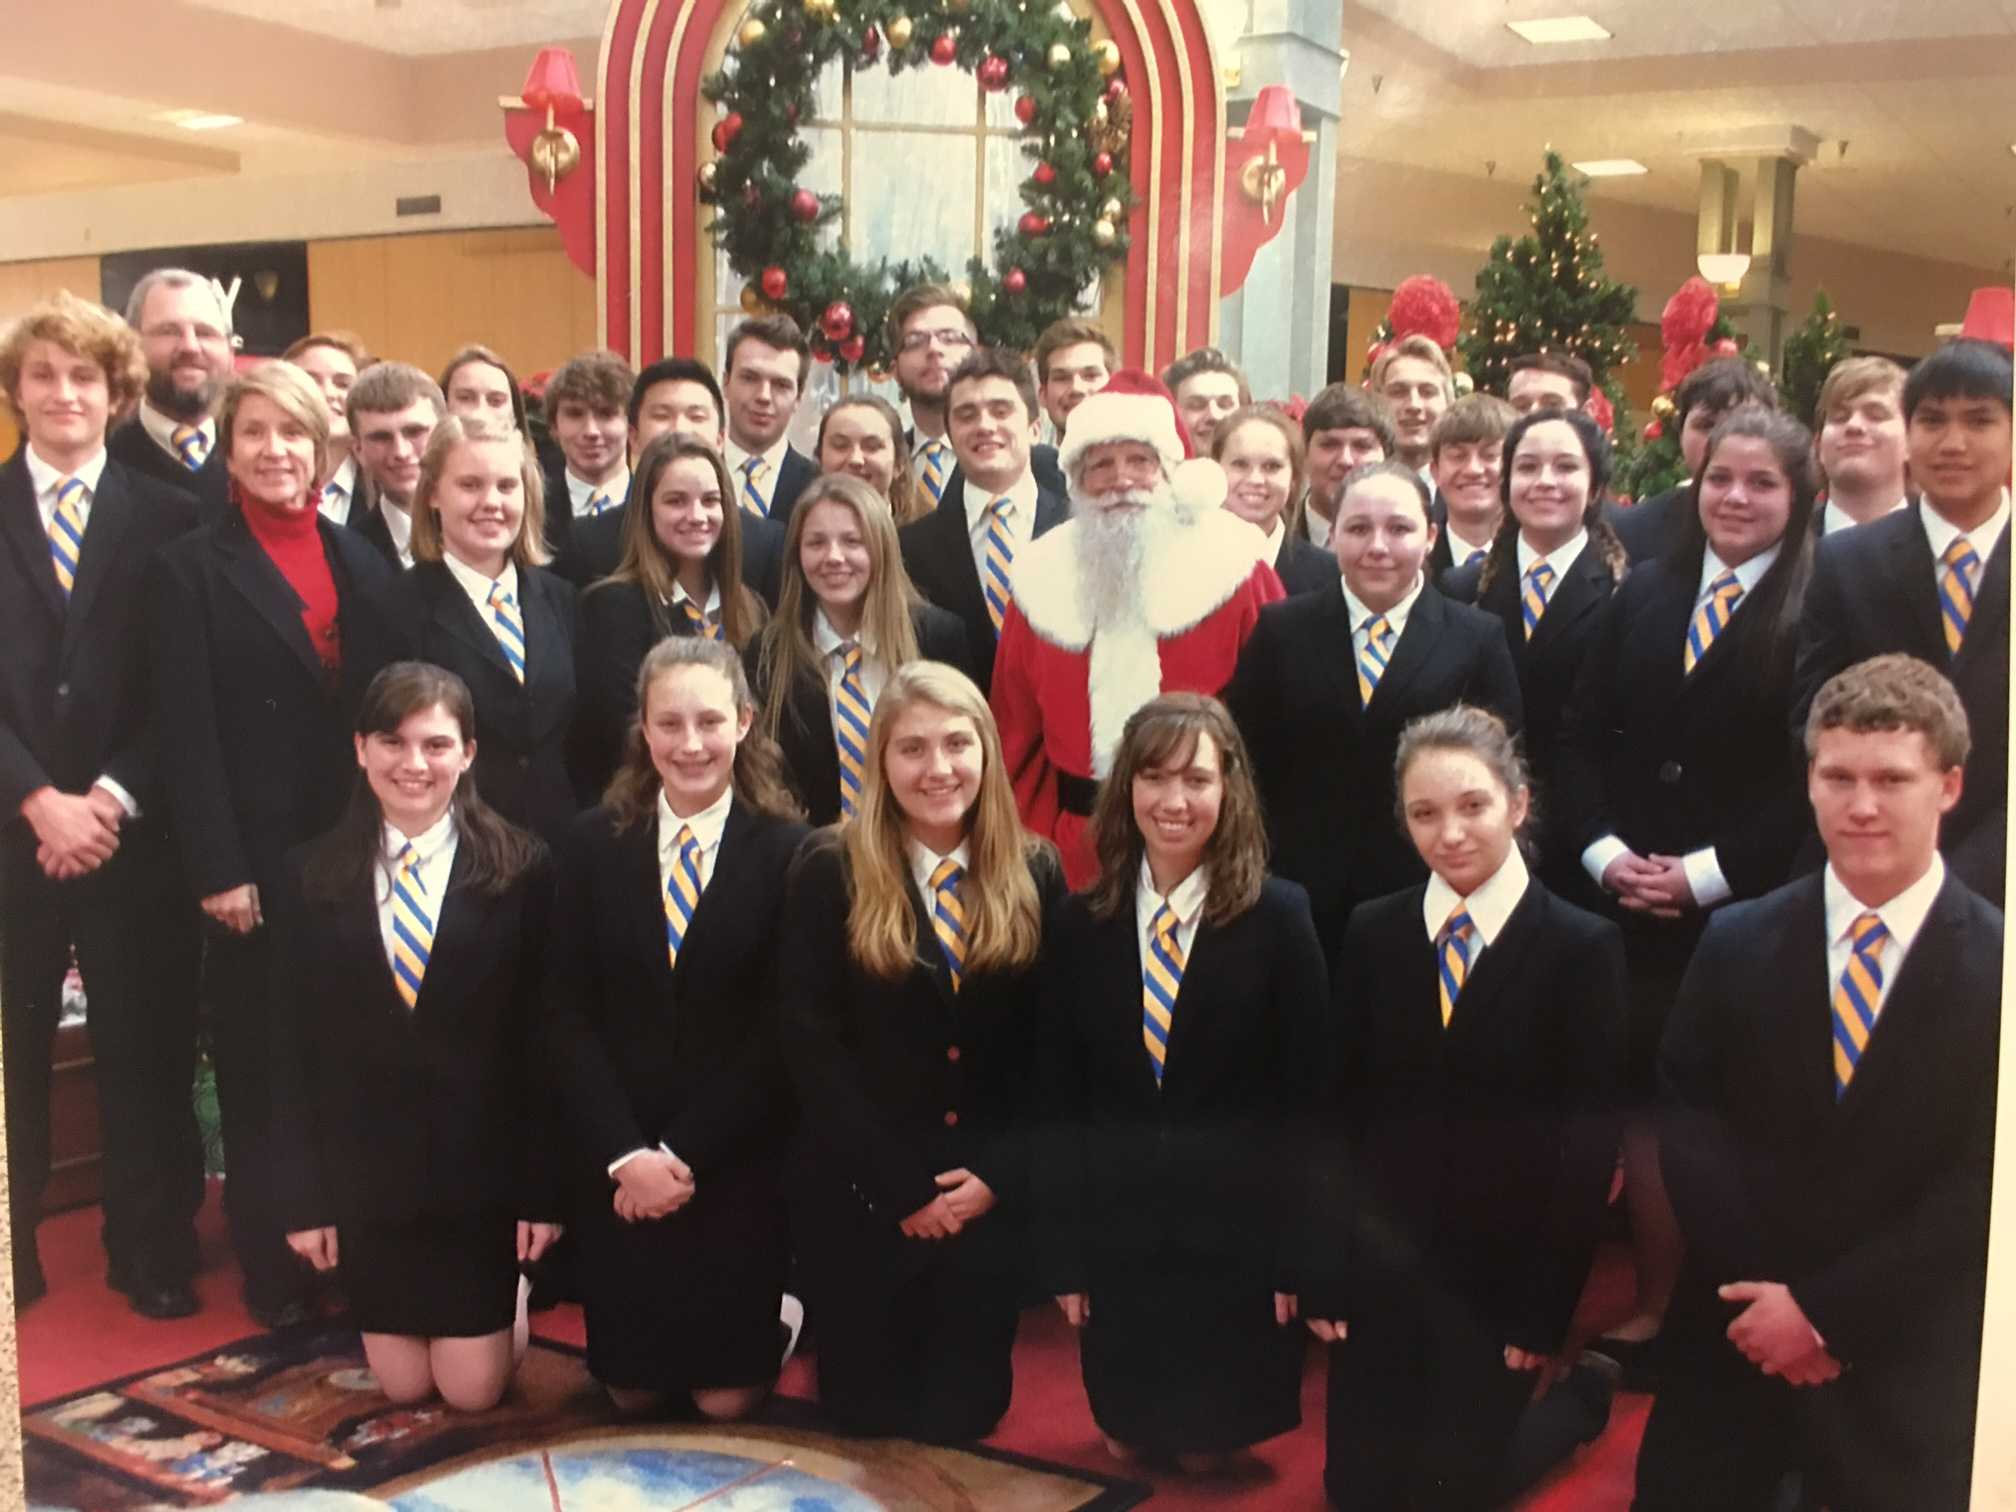 The 2016-2017 We the People team went to go see Santa Claus when traveling as a team.